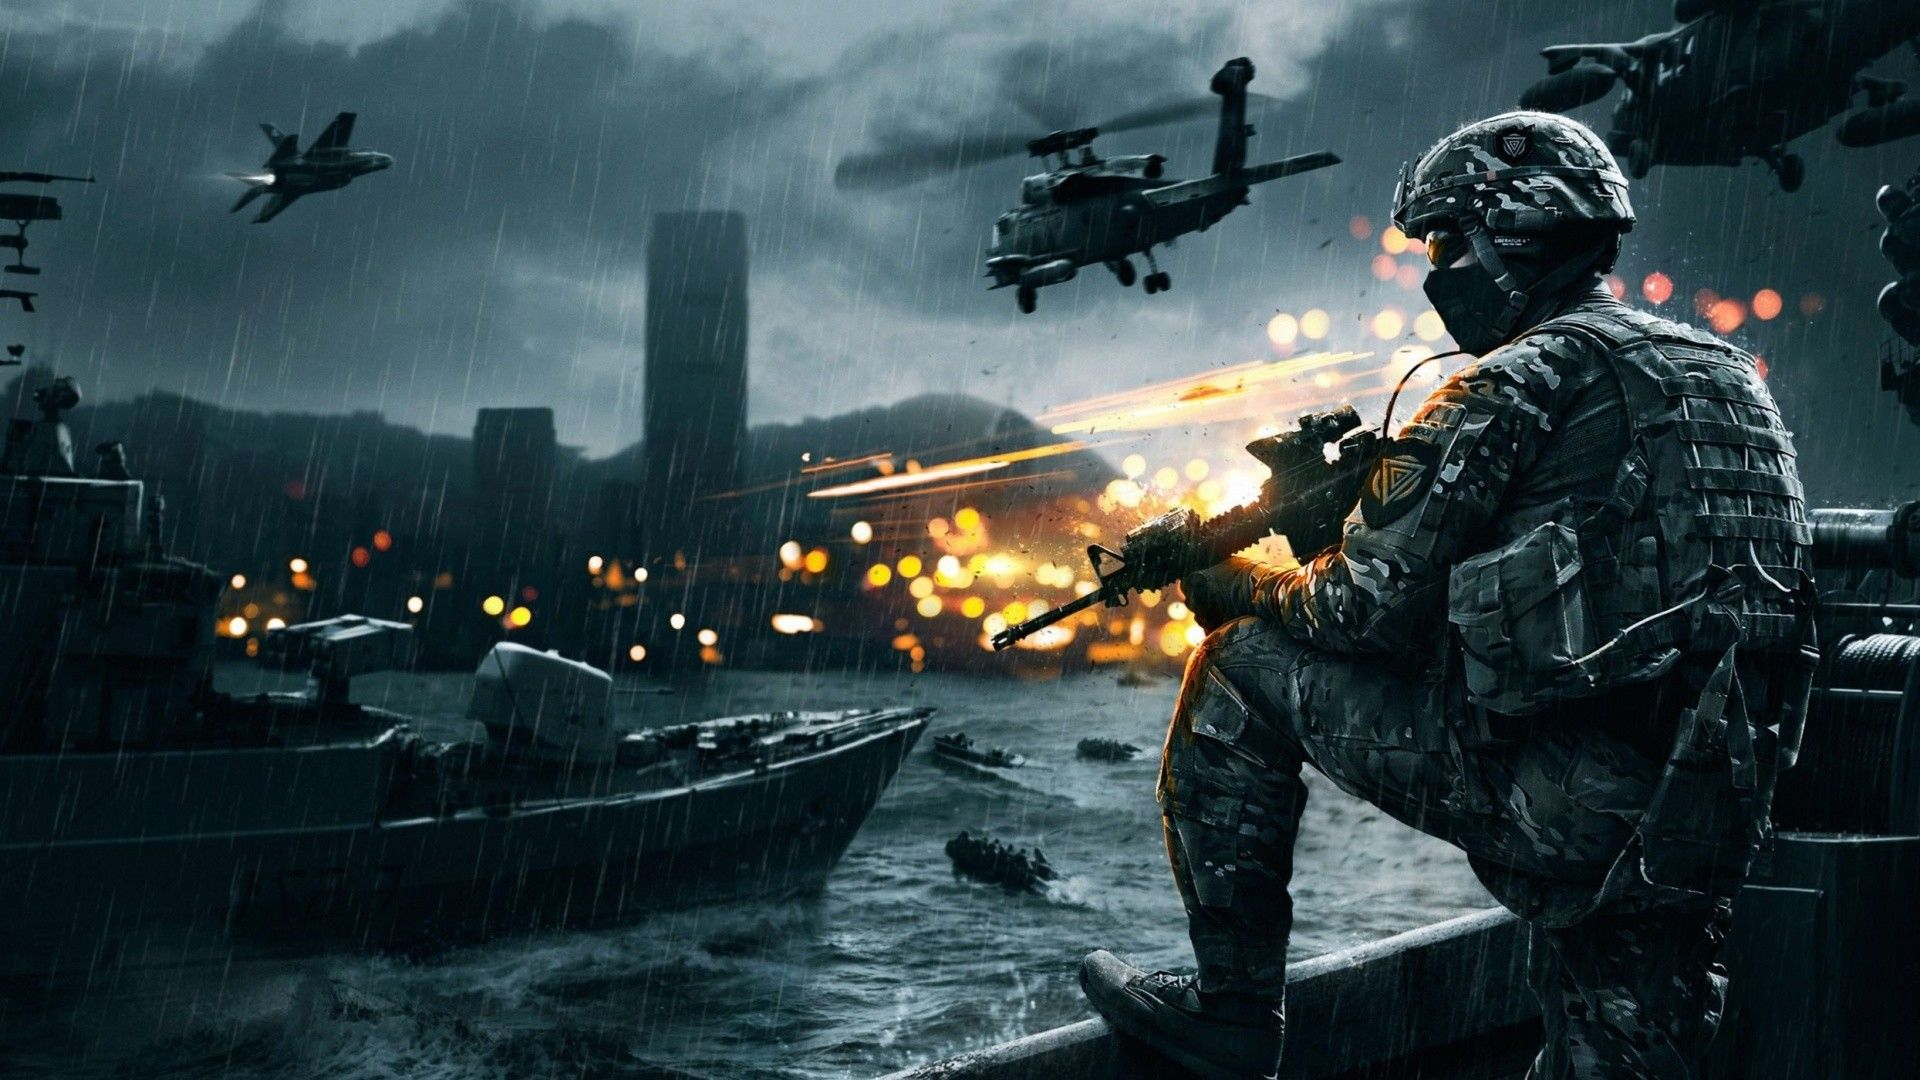 Indian Army Computer Hd Wallpapers Wallpaper Cave